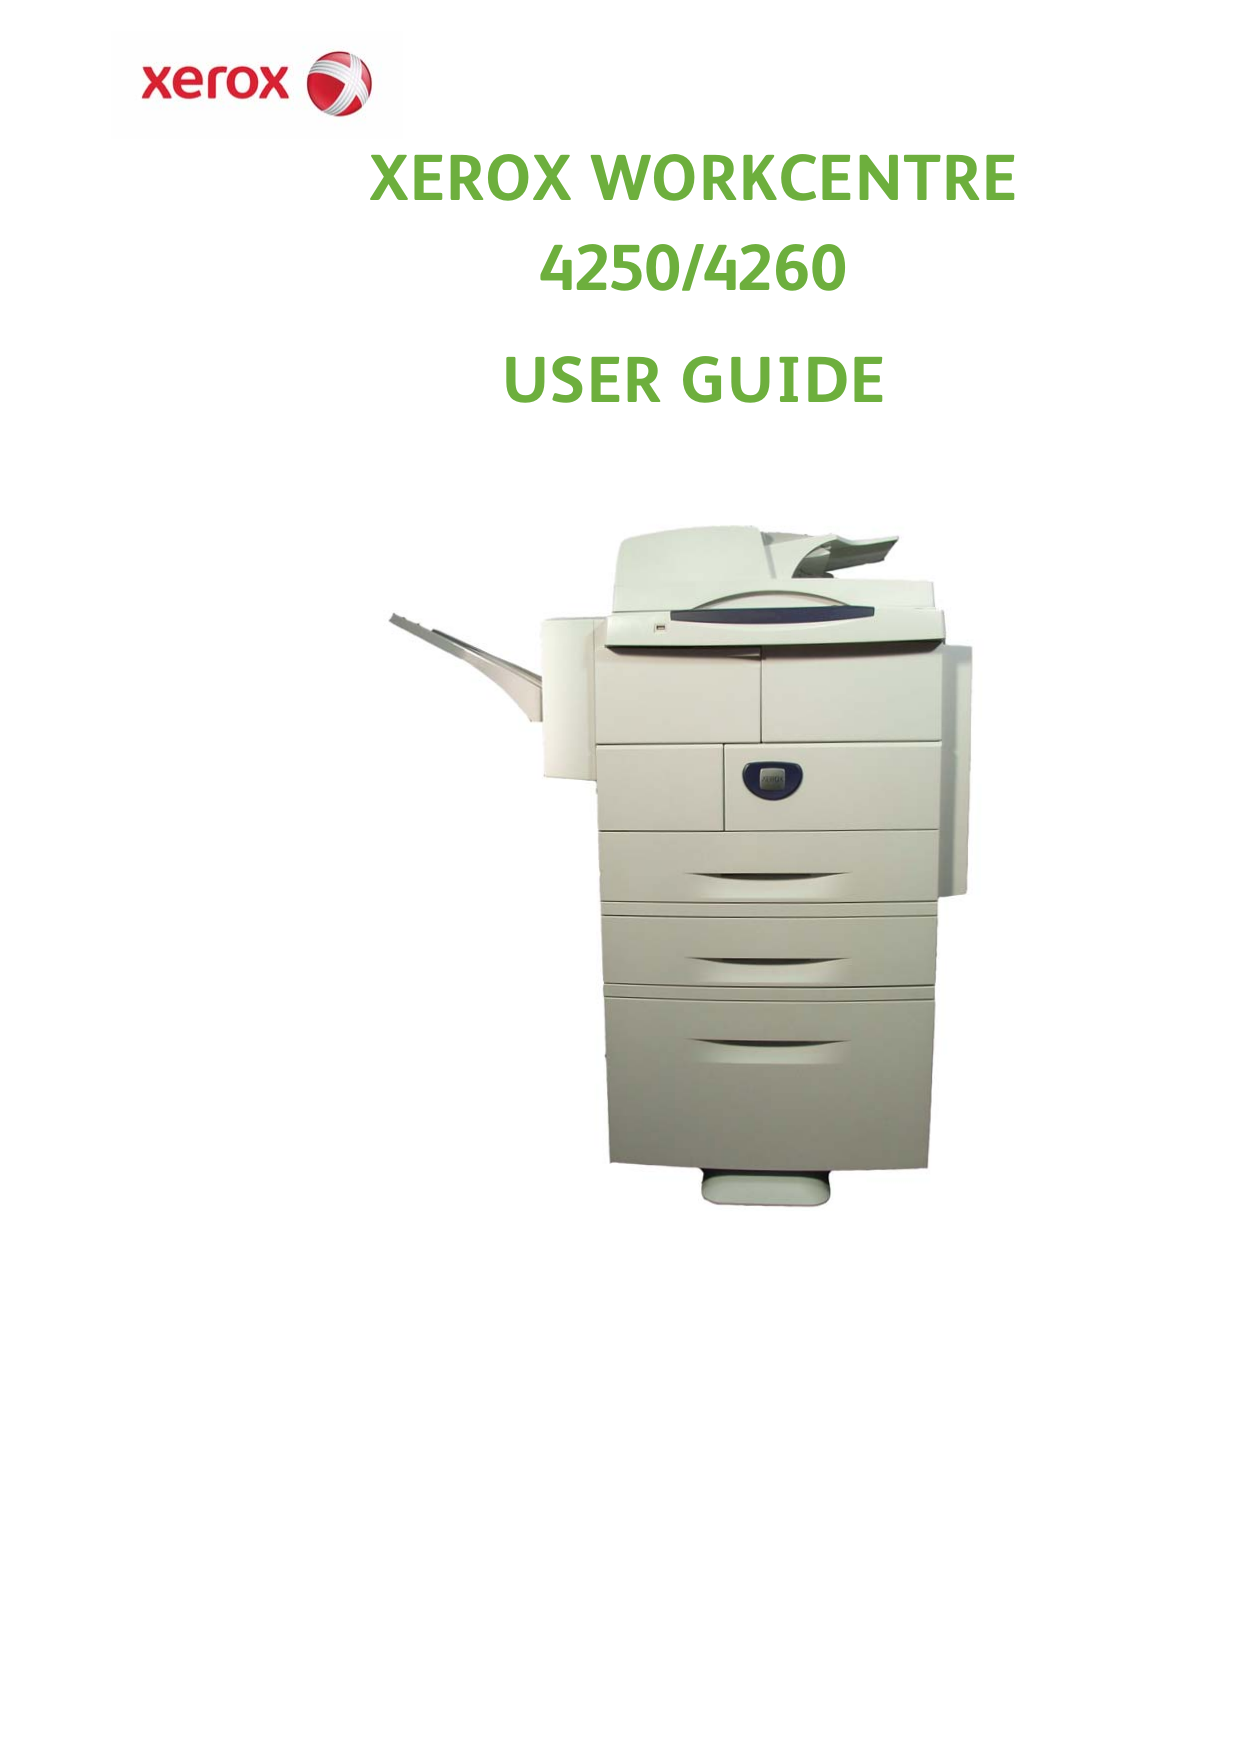 download free pdf for xerox workcentre 7335 multifunction printer manual rh umlib com xerox wc 7335 service manual xerox workcentre 7335 service manual pdf